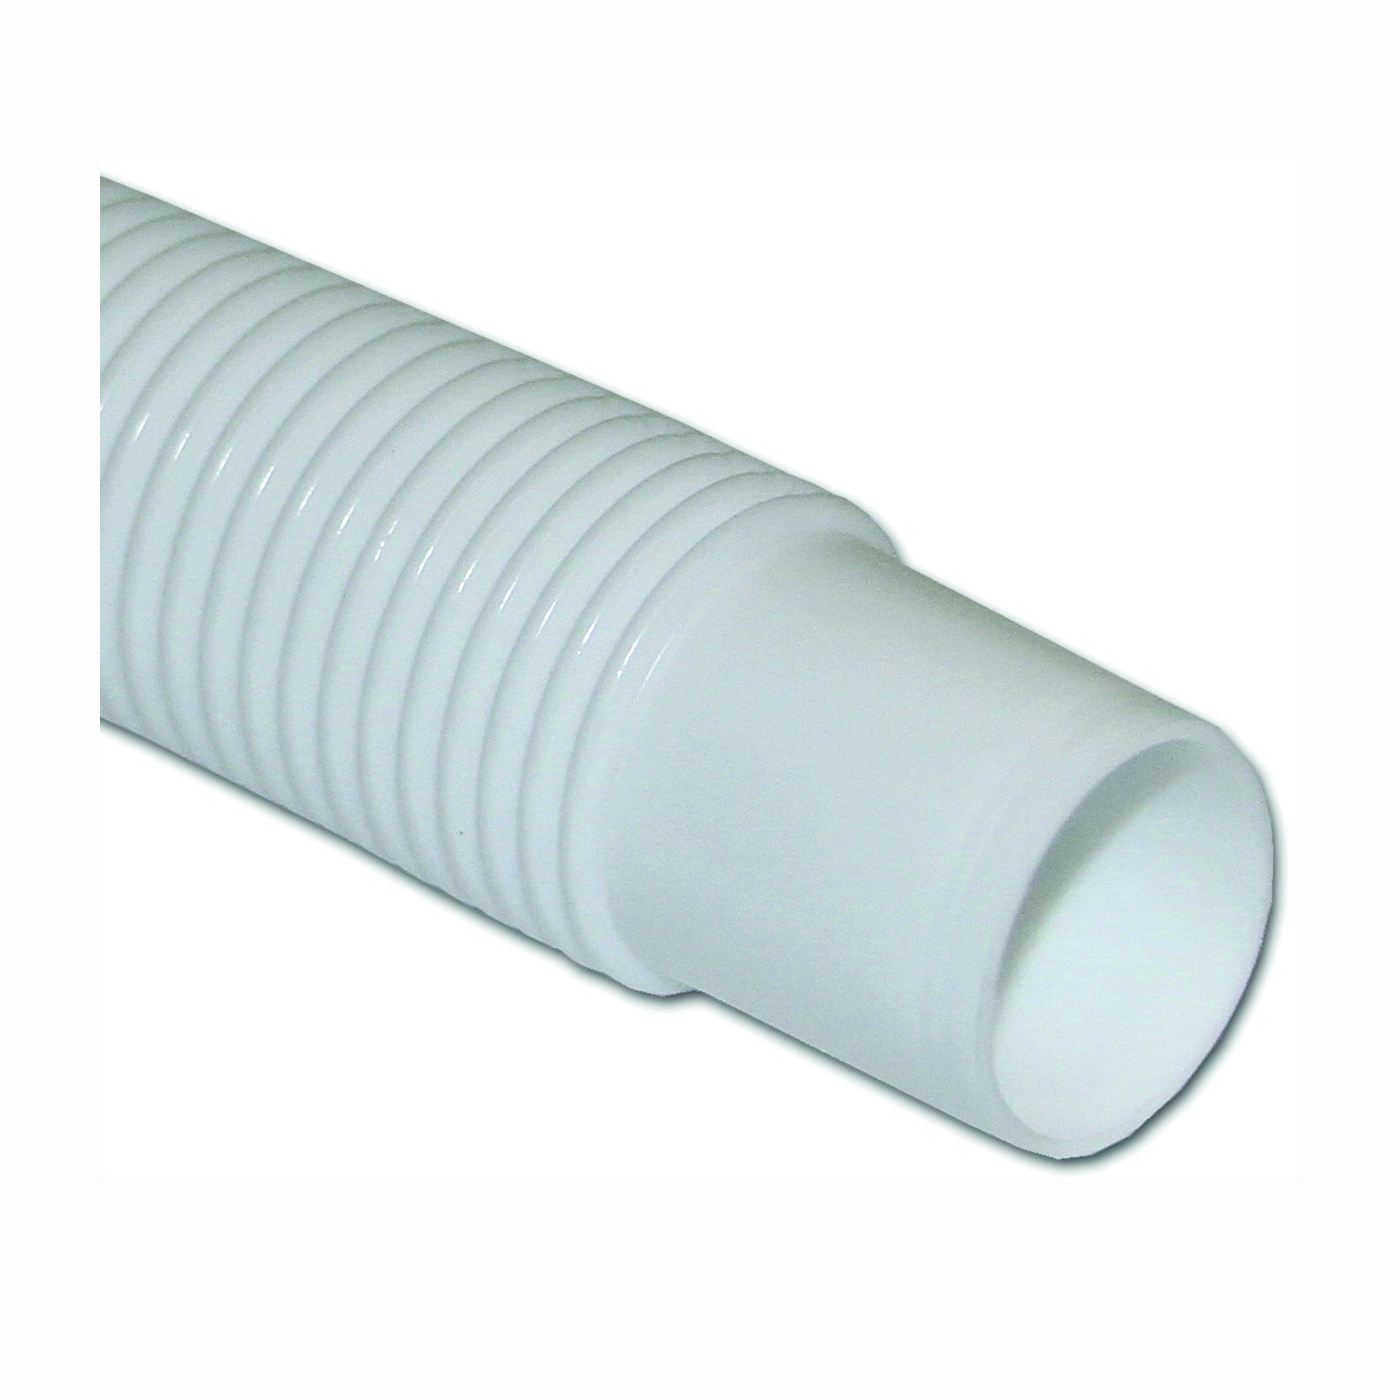 Picture of UDP T34 Series T34005004/RBBR Bilge Hose, 1-1/2 in ID, 50 ft L, Polyethylene, Milky White